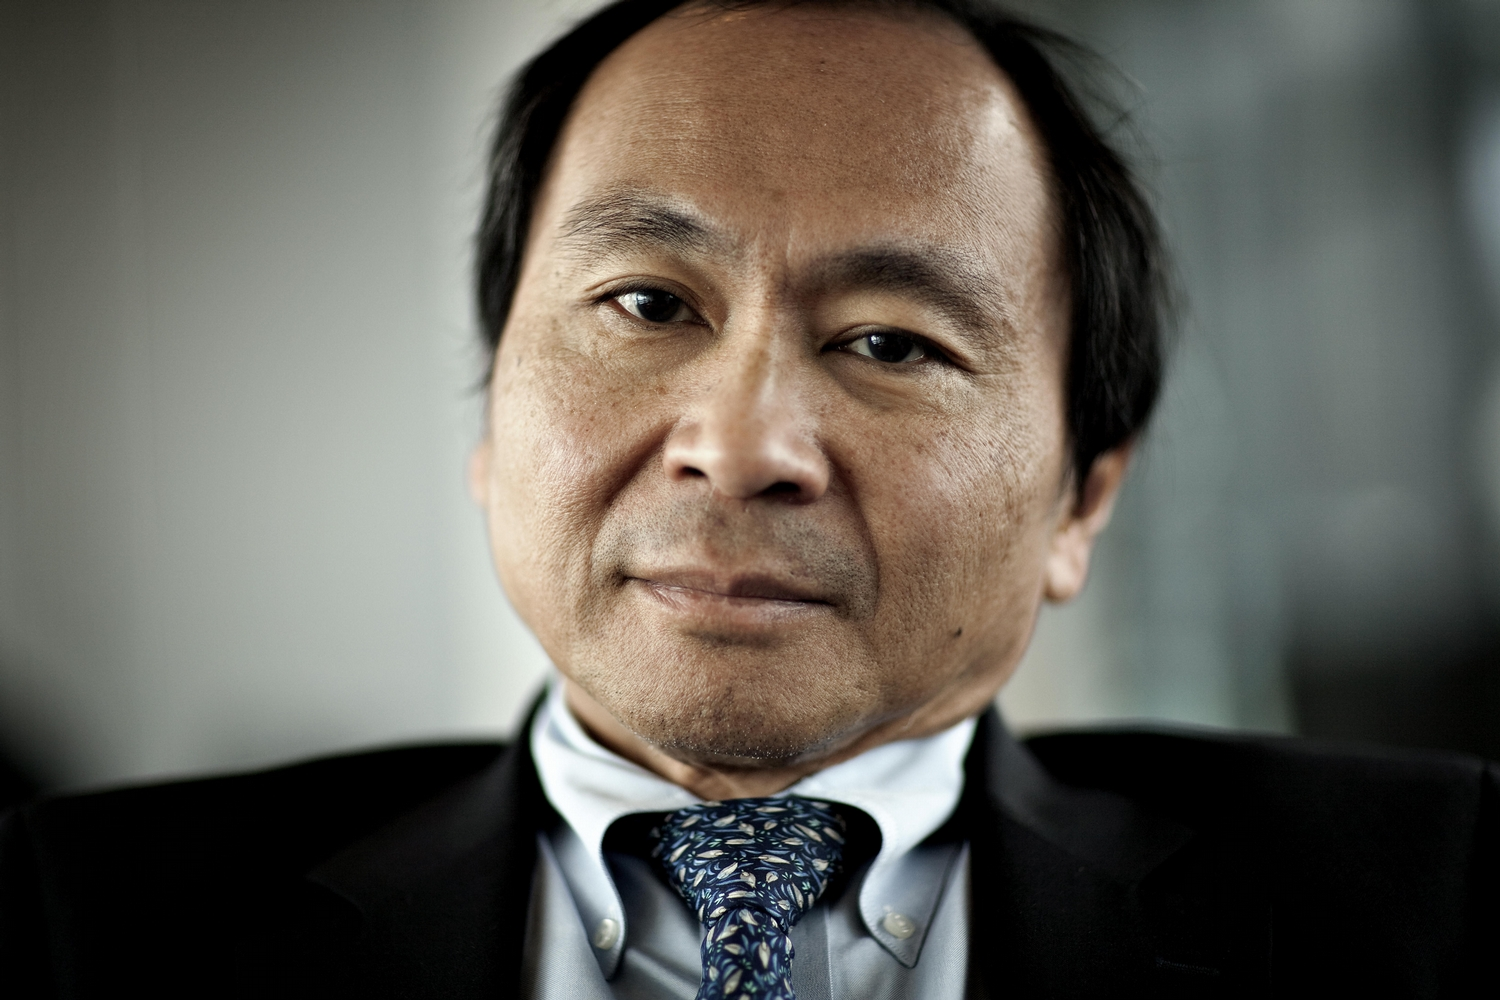 francis fukuyama end of history essay Essay about home alone film benjamin the essay history francis end fukuyama 1989 of writing december 17, 2017 @ 9:42 pm compare and contrast essay high school and.